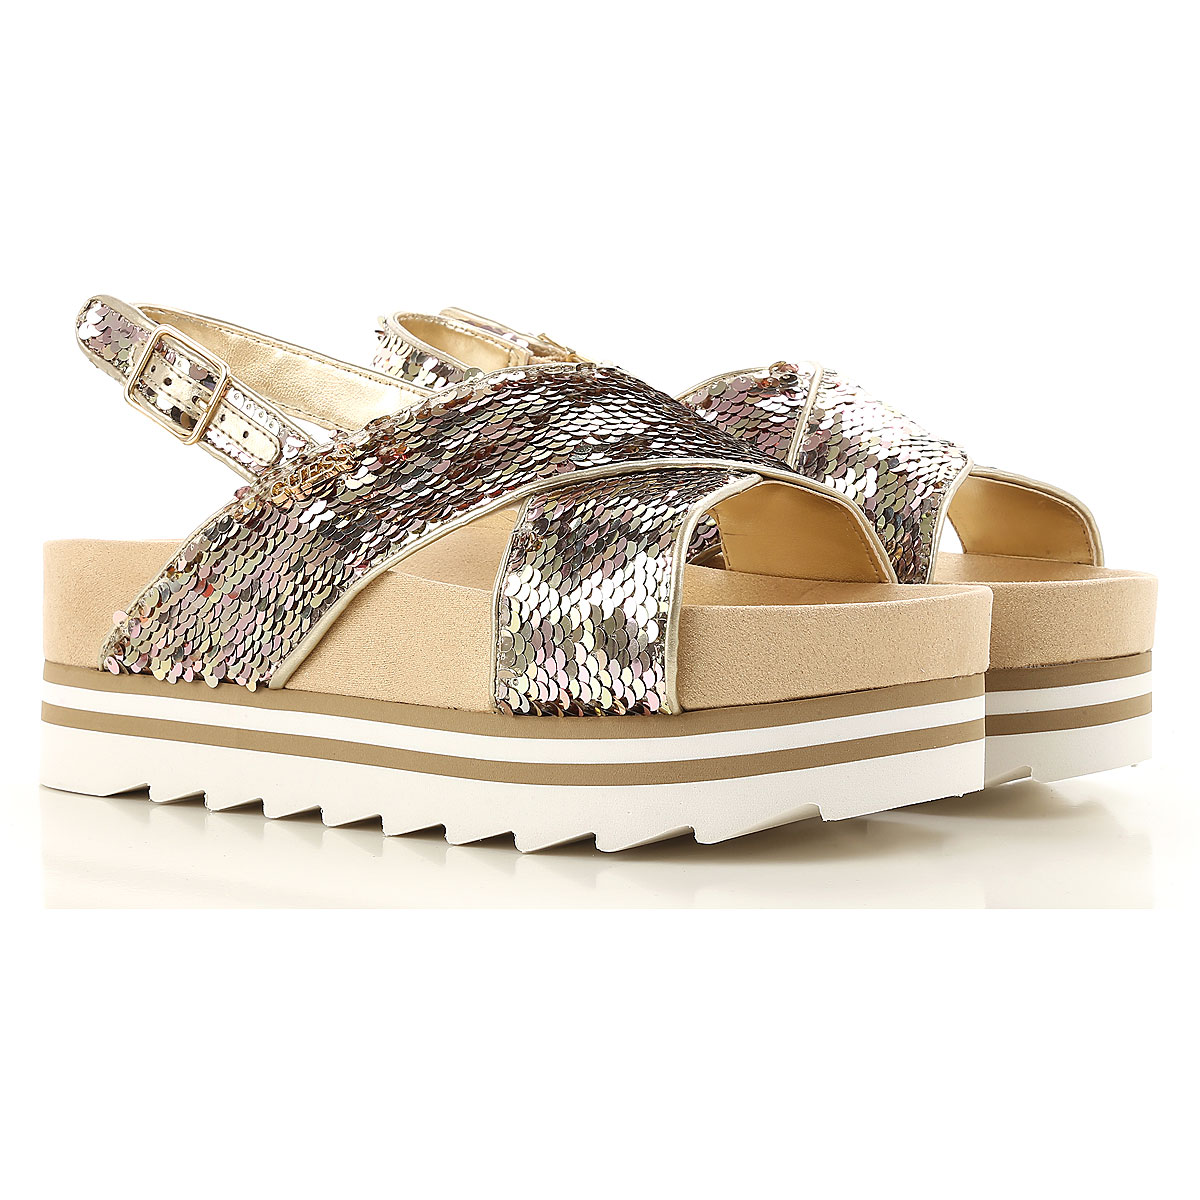 961f711ff6 Womens Shoes Guess, Style code: flhrr2-sat03-oro